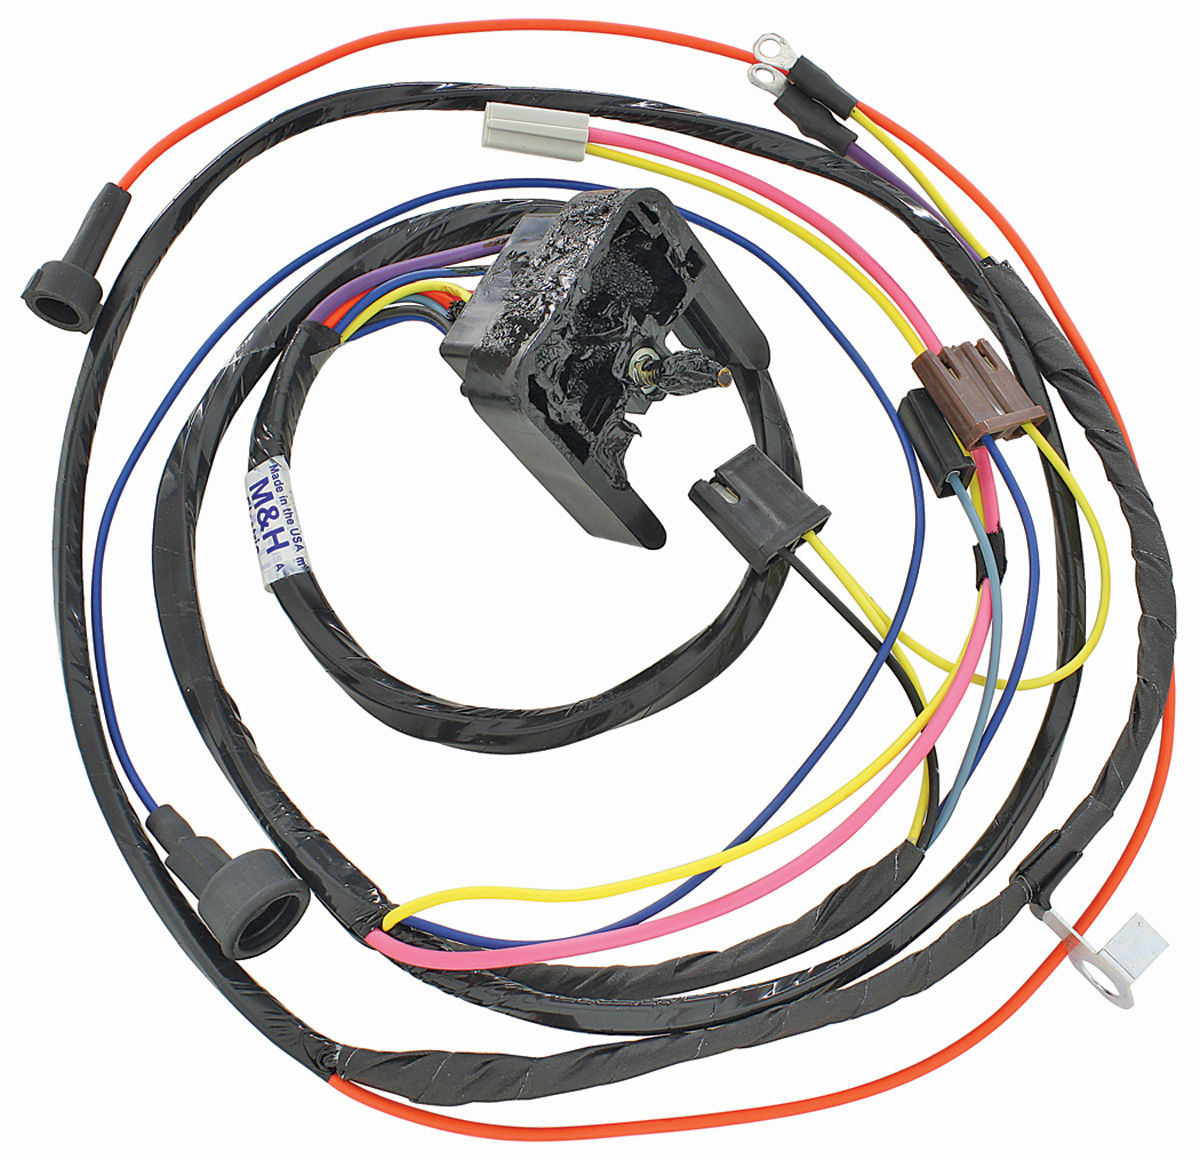 38947 lrg?v=102520130818 m&h 1968 69 chevelle engine harness 396 hei w warning lights motor wiring harness for a 1966 ford galaxie at panicattacktreatment.co